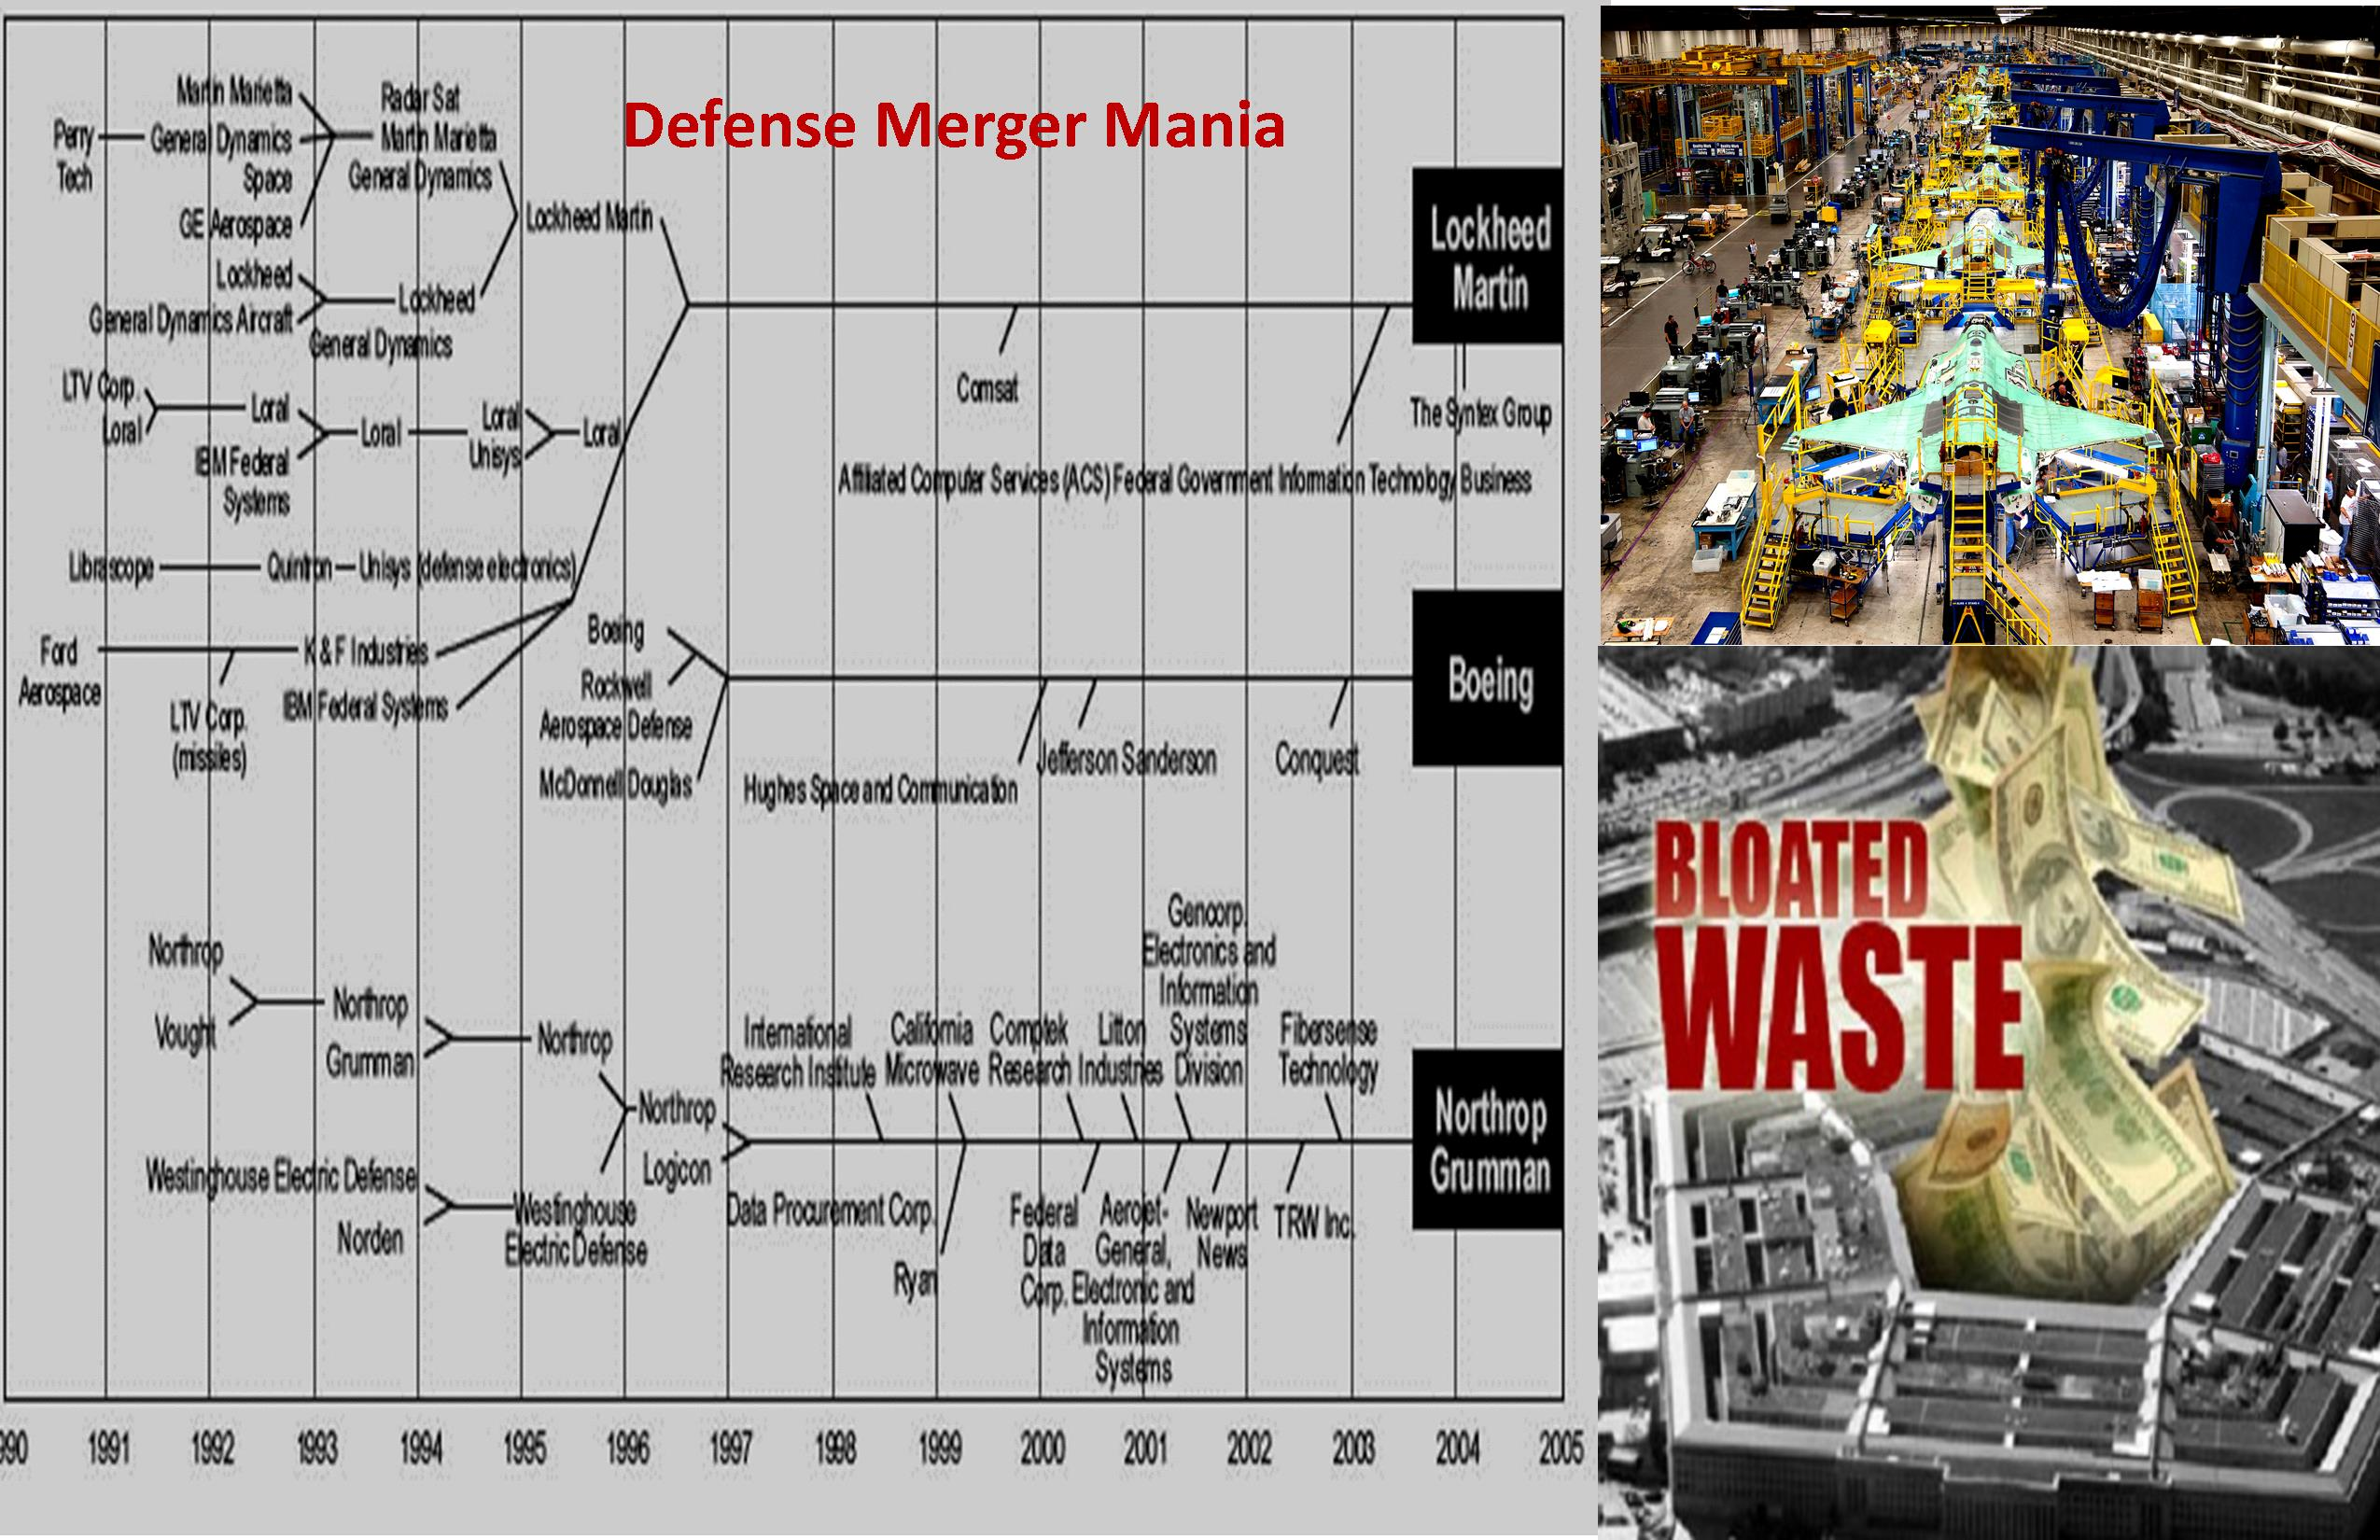 Mergers and Bloated Waste